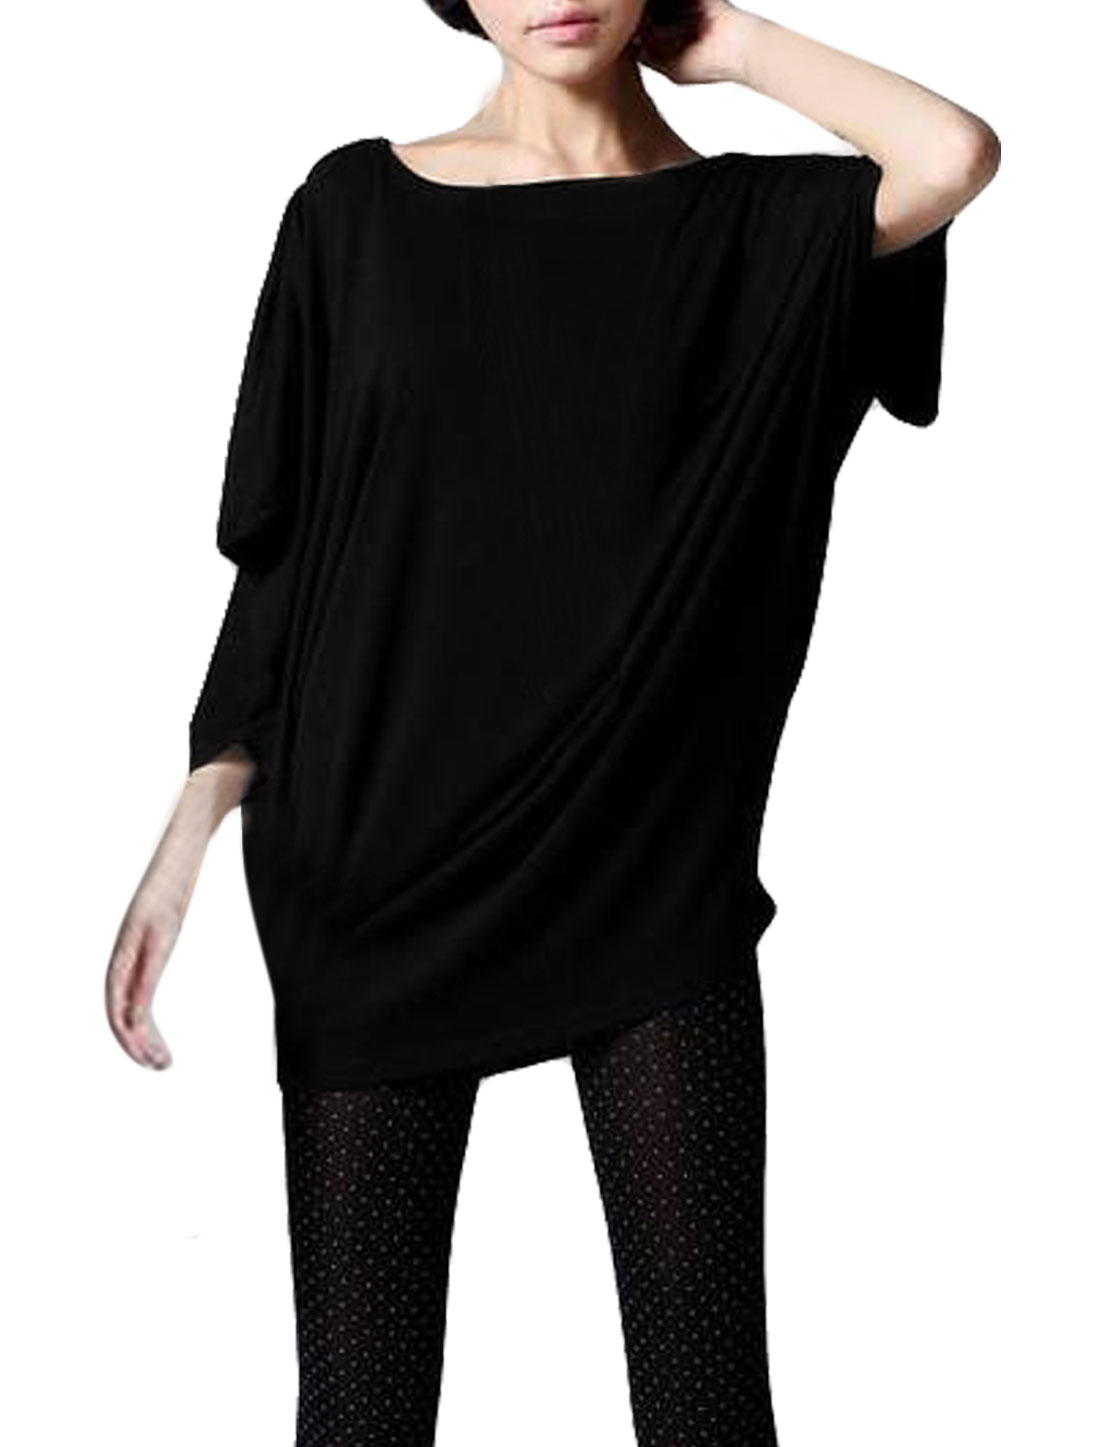 Ladies Black Batwing Sleeves Pullover Loose Stretchy Leisure Tee Shirt S